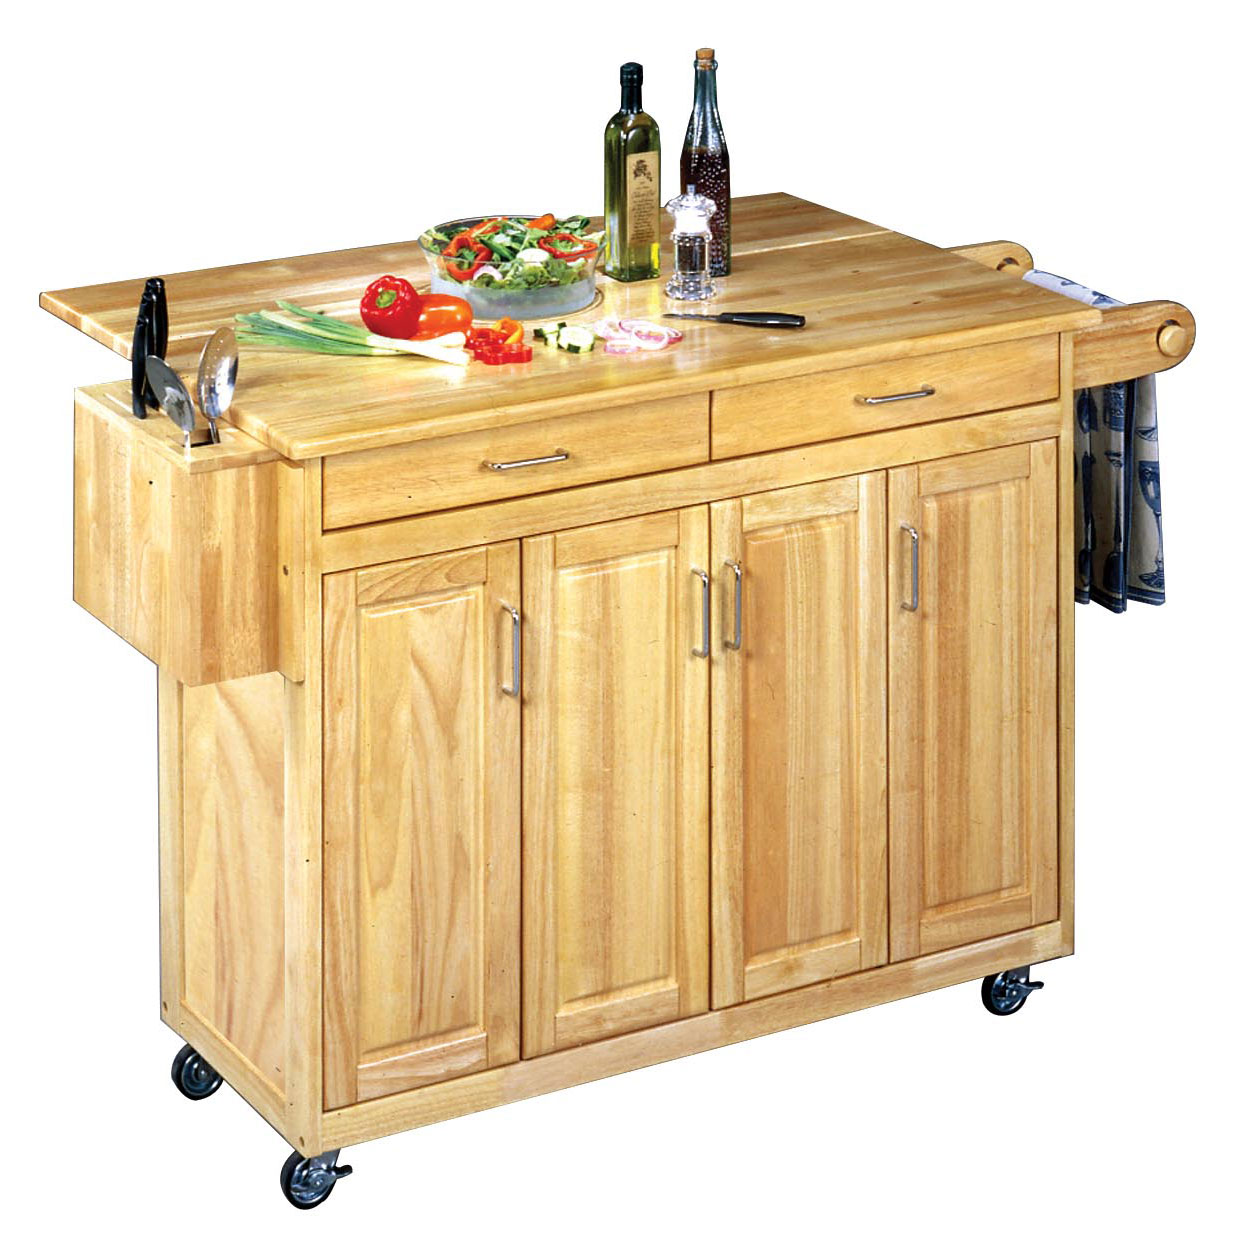 Wood Top Kitchen Cart with Breakfast Bar, WOOD